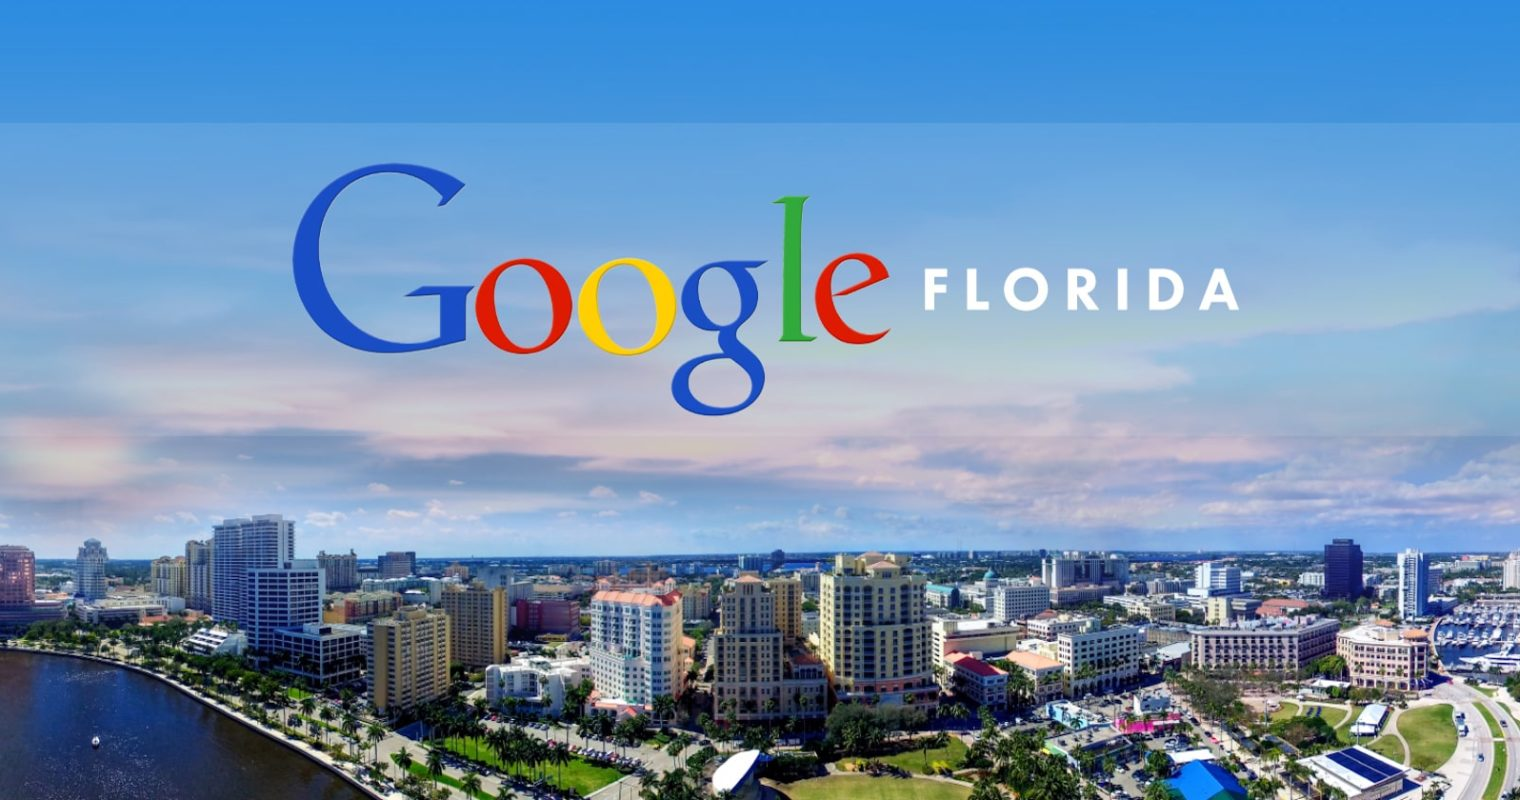 Google Florida: The First Major Algorithm Update